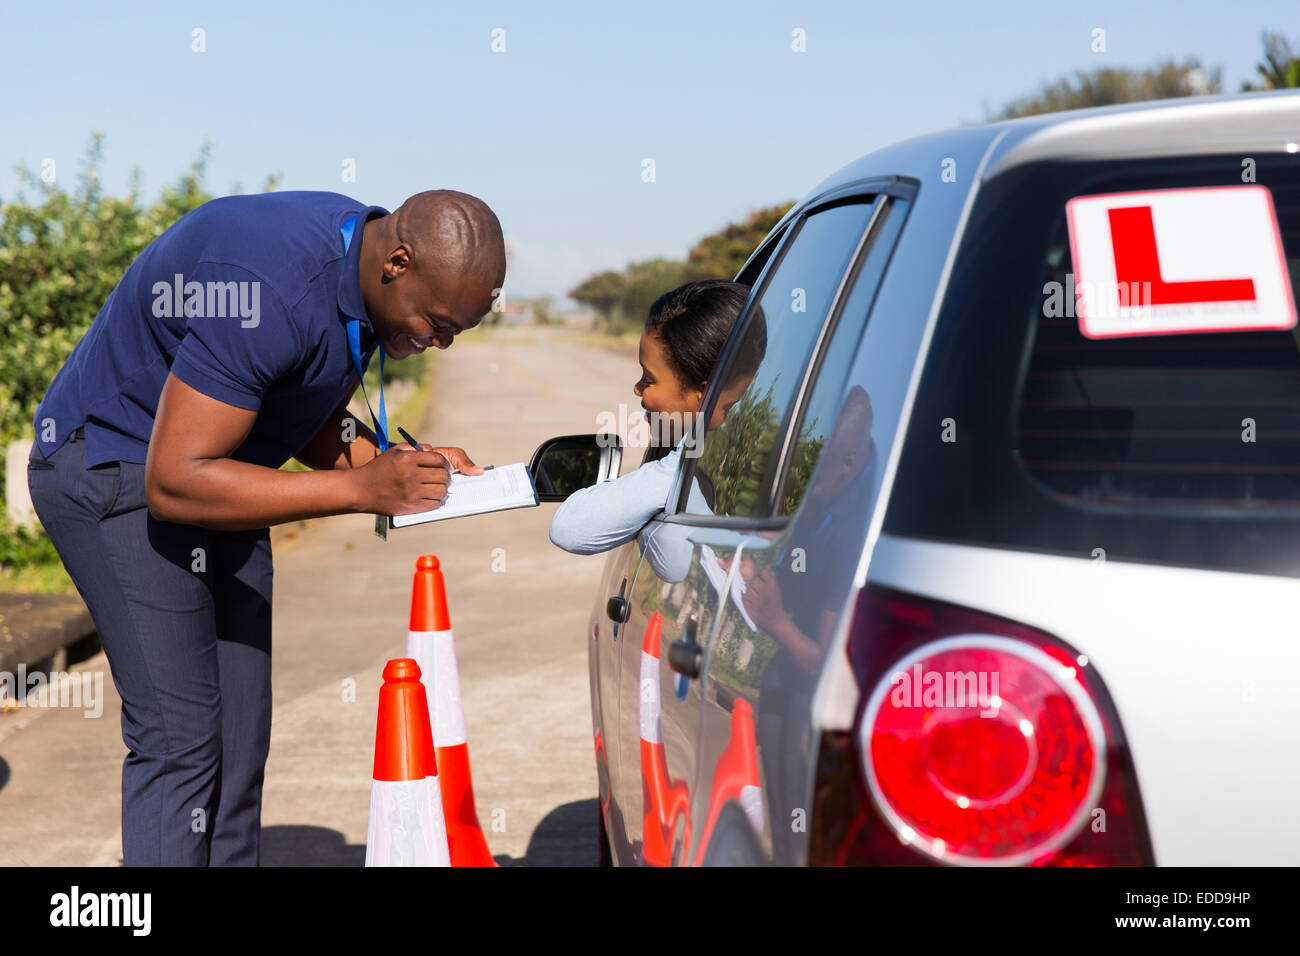 male African driving instructor and student driver in testing ground - Stock Image